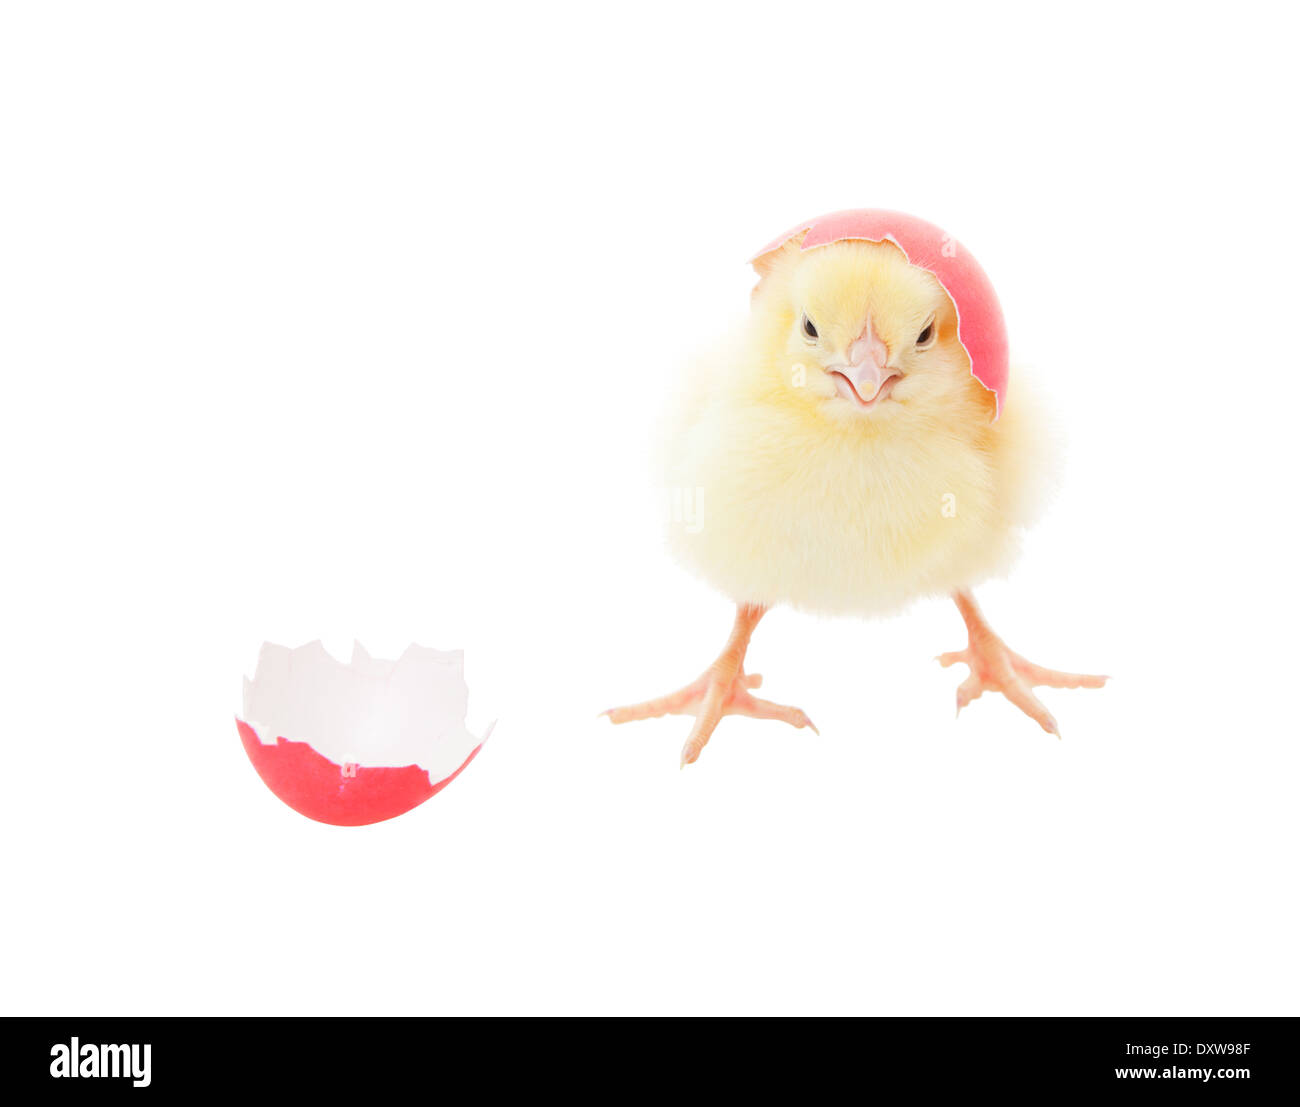 A chick hatching out of a pink Easter egg. Shot on white background. - Stock Image